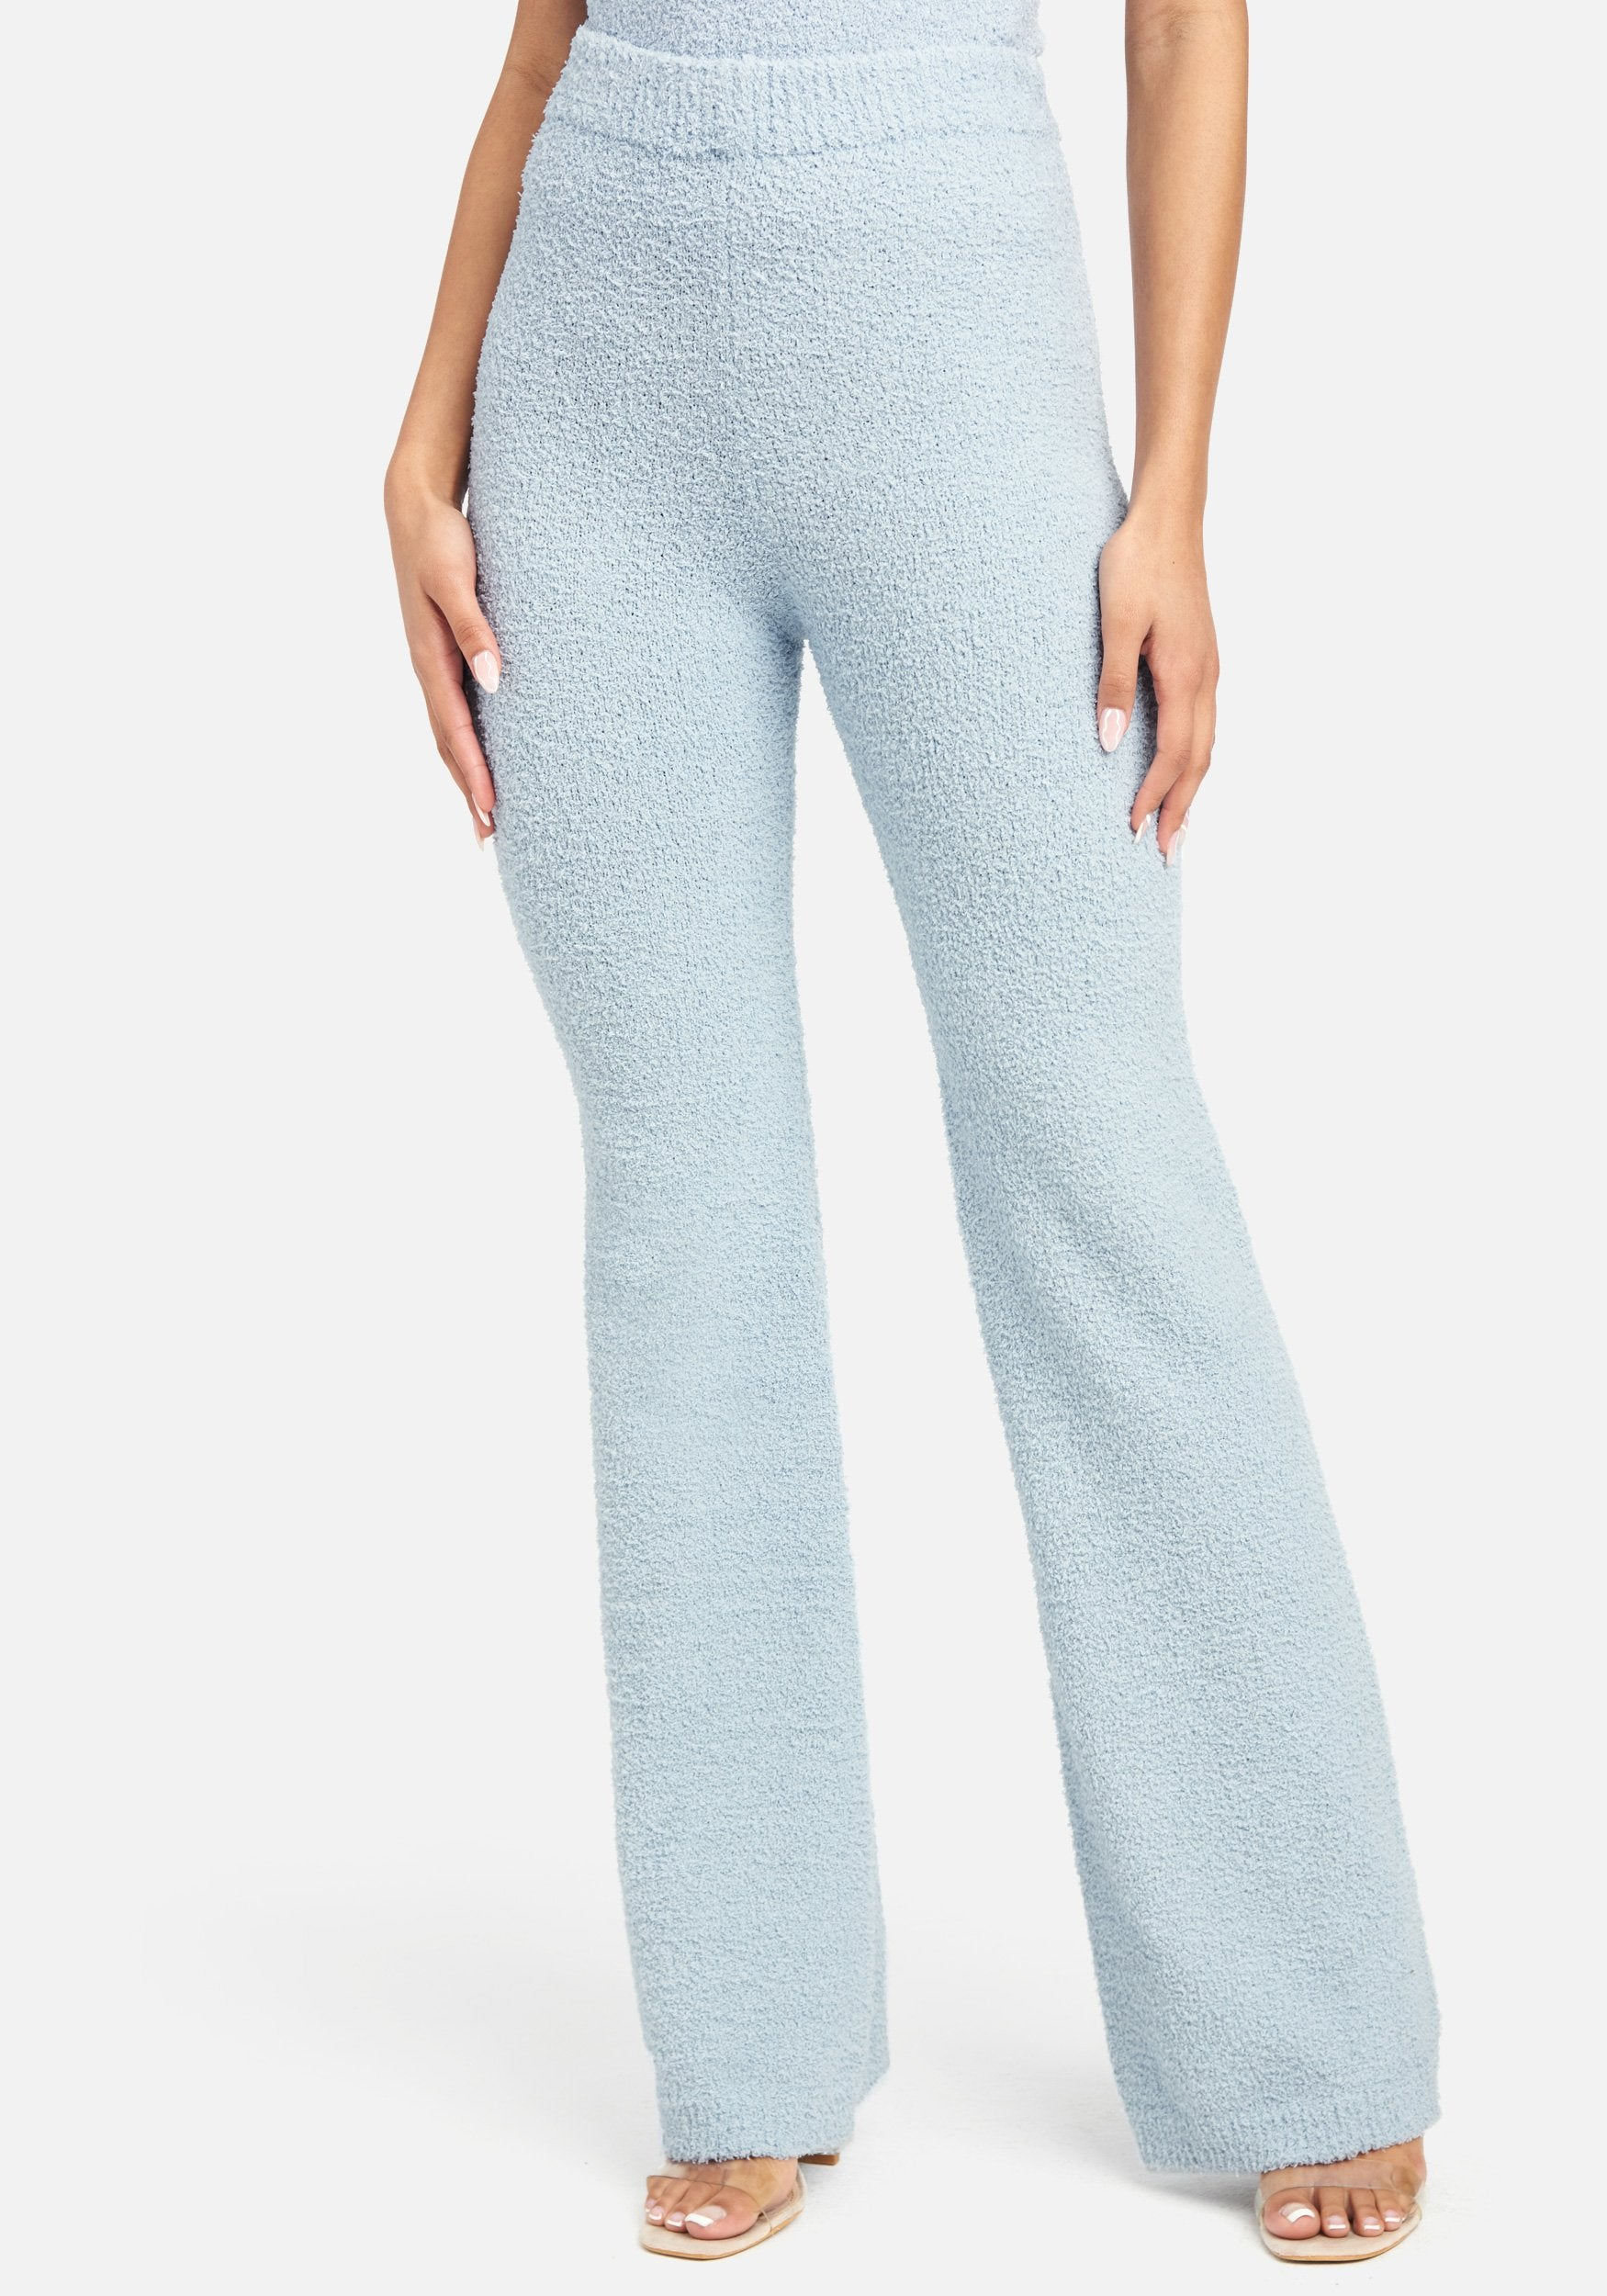 Bebe Women's Chenille Knit Pant, Size XS in Ice Blue Polyester